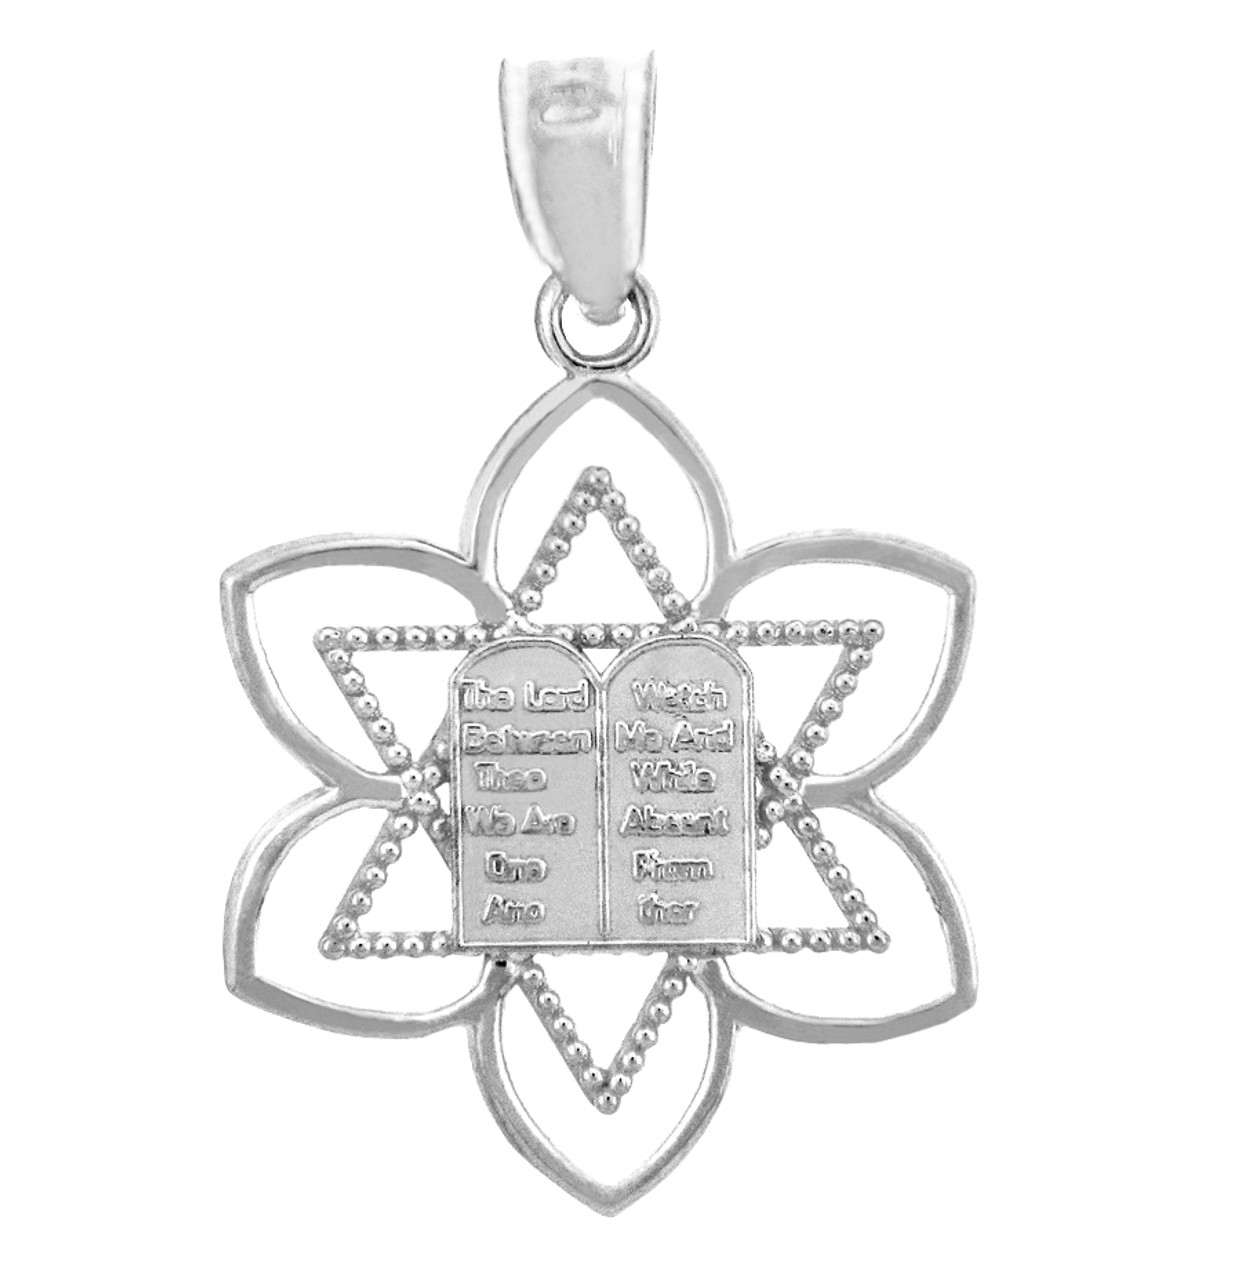 Charms and pendants mizpah star of david white gold pendant jewish charms and pendants mizpah star of david white gold pendant aloadofball Image collections